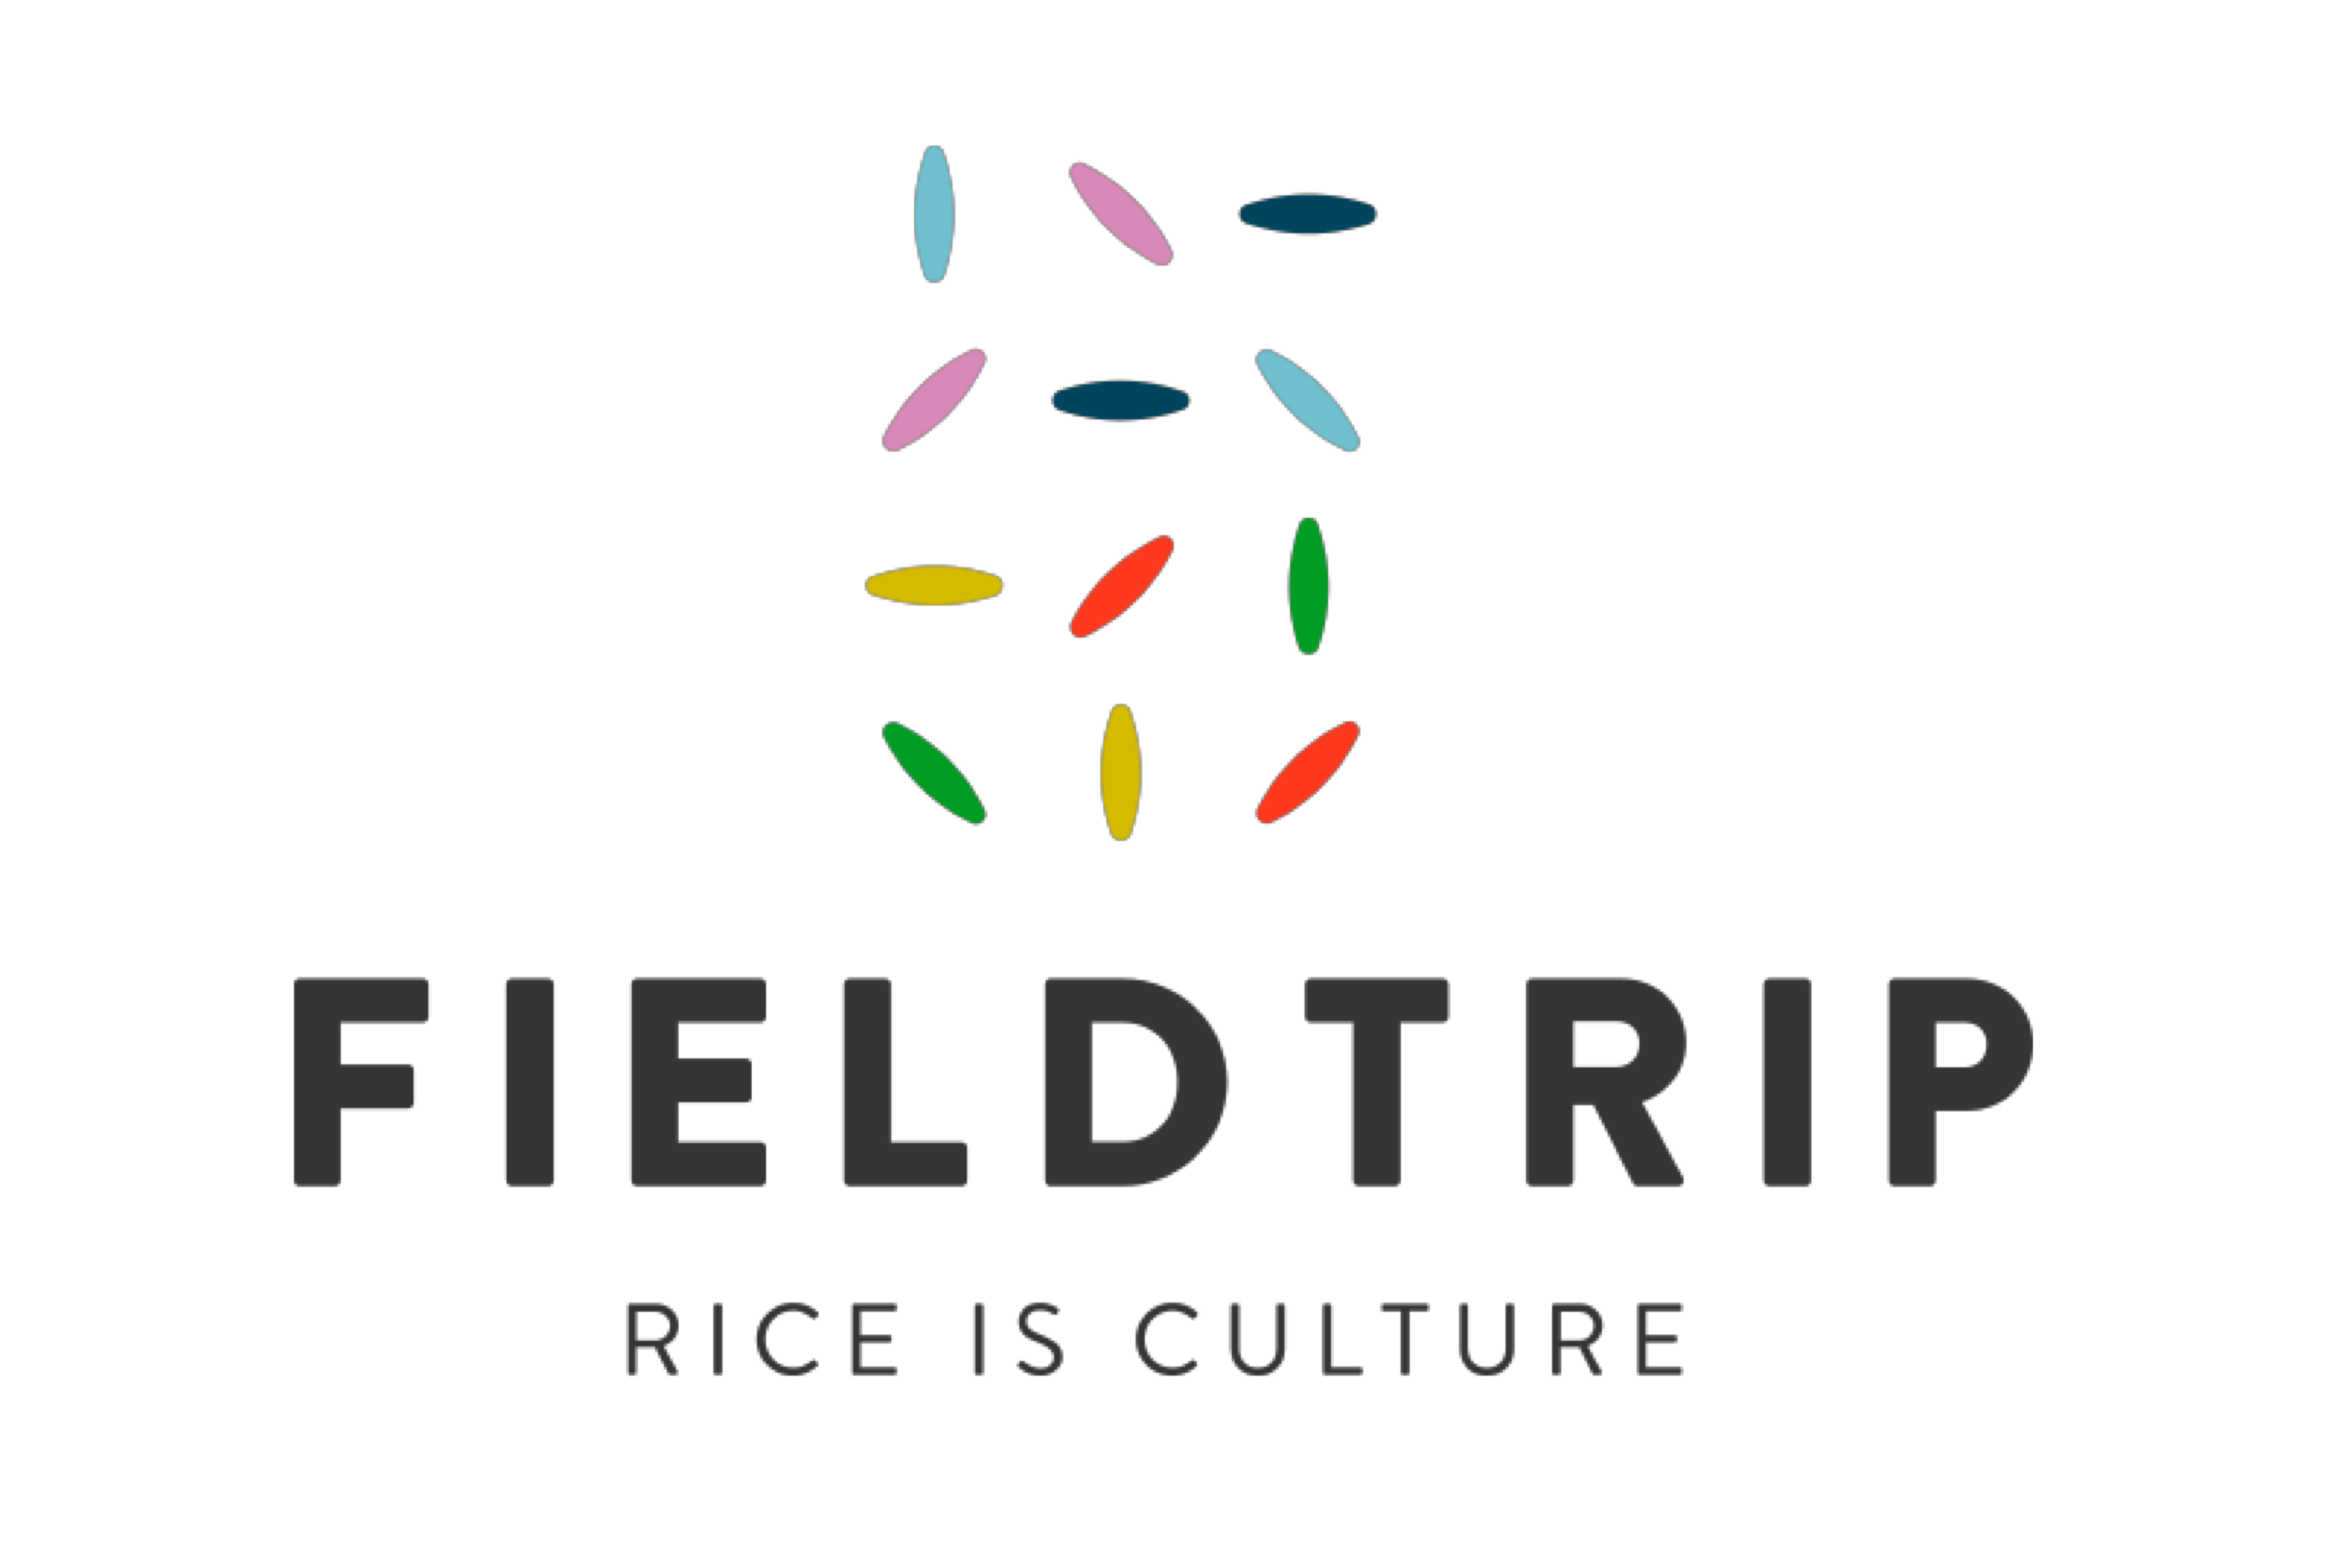 Fieldtrip. Rice is Culture.